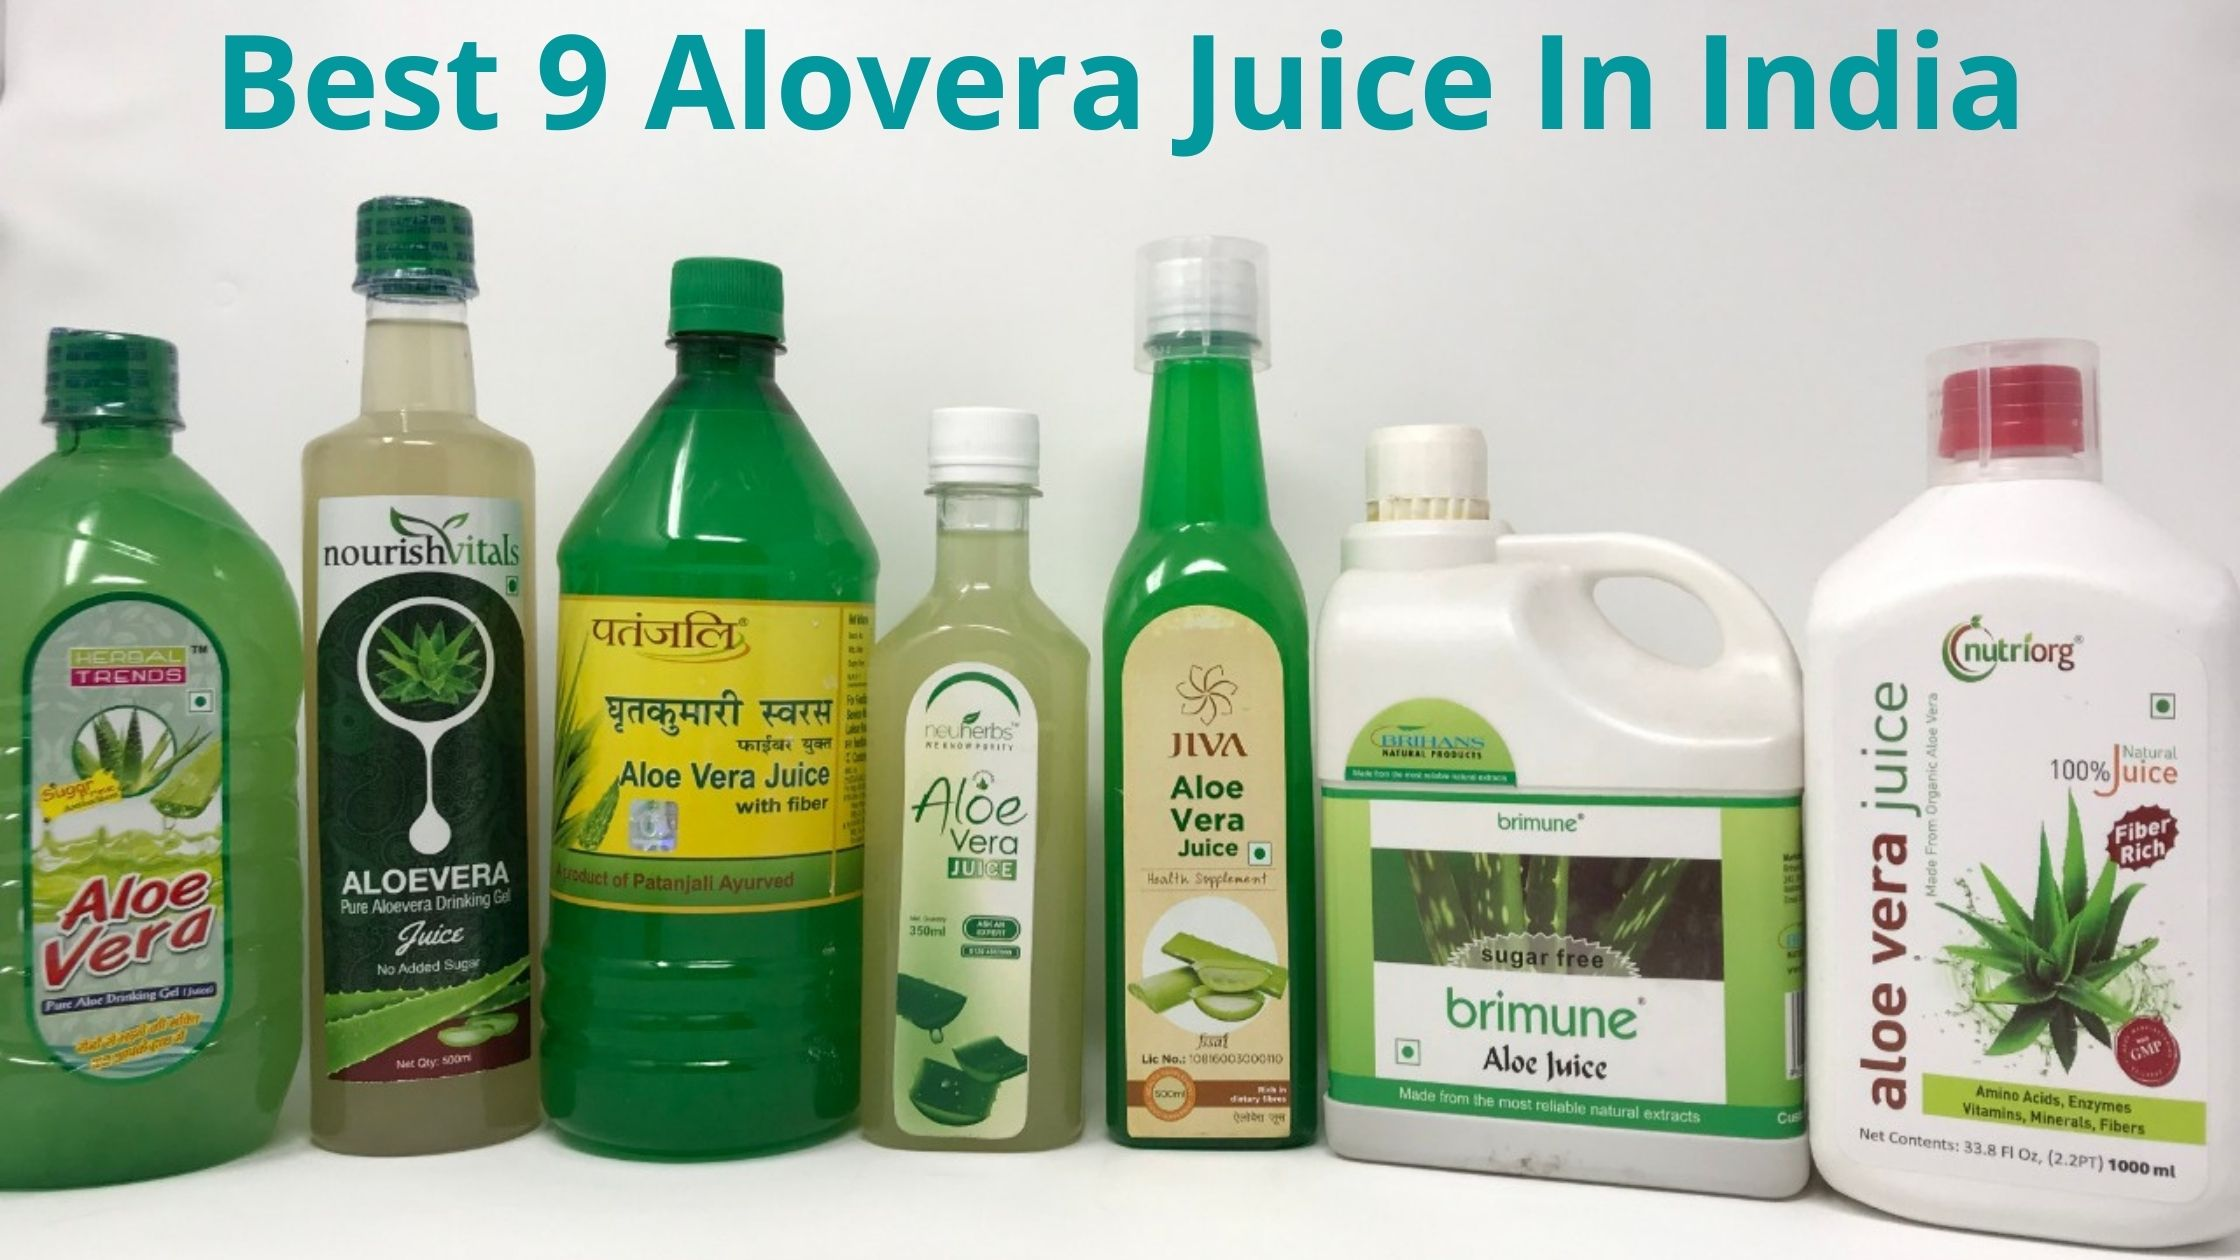 Aloe vera has been used for many centuries as a medicinal plant and is used extensively in home remedies in India.